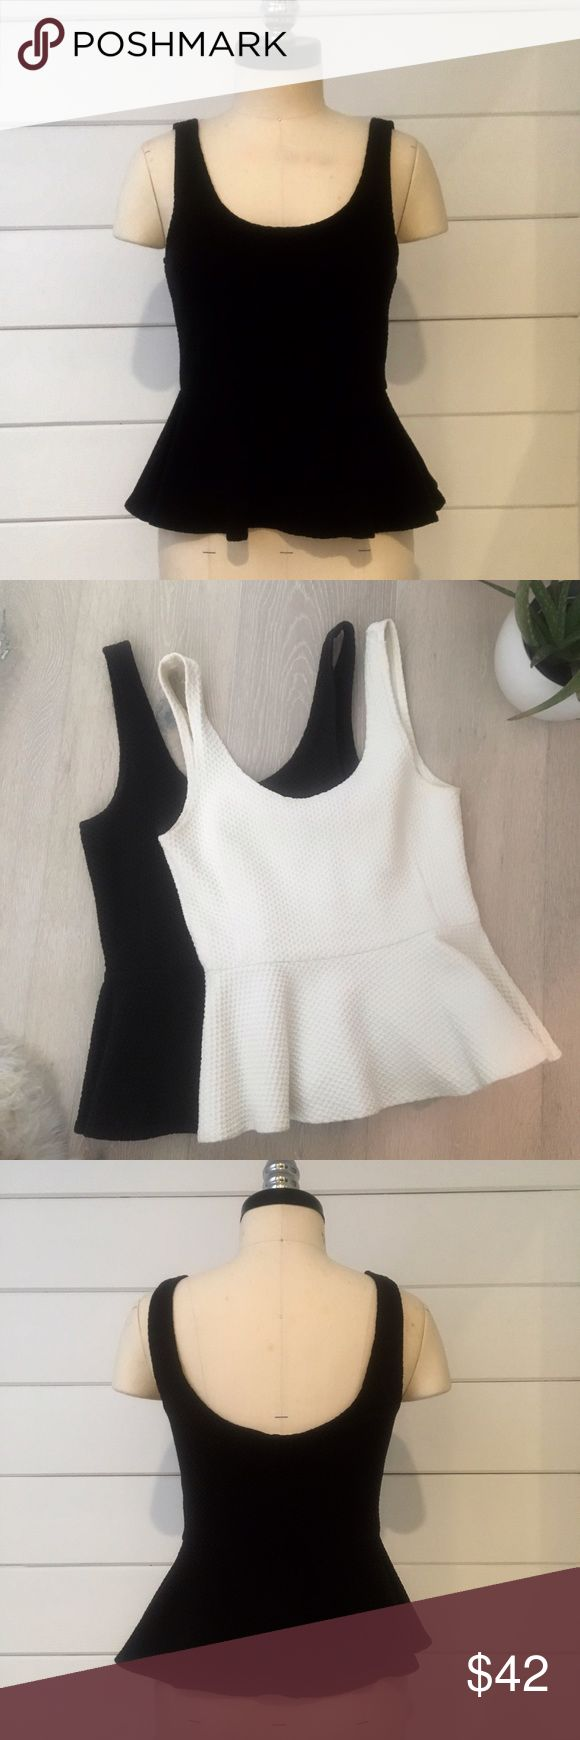 Anthropologie • black peplum top Super flattering Anthropologie - store brand, Ganni- peplum top. Heavy knit stretch cotton. In black and white. Sold separately. XS Anthropologie Tops